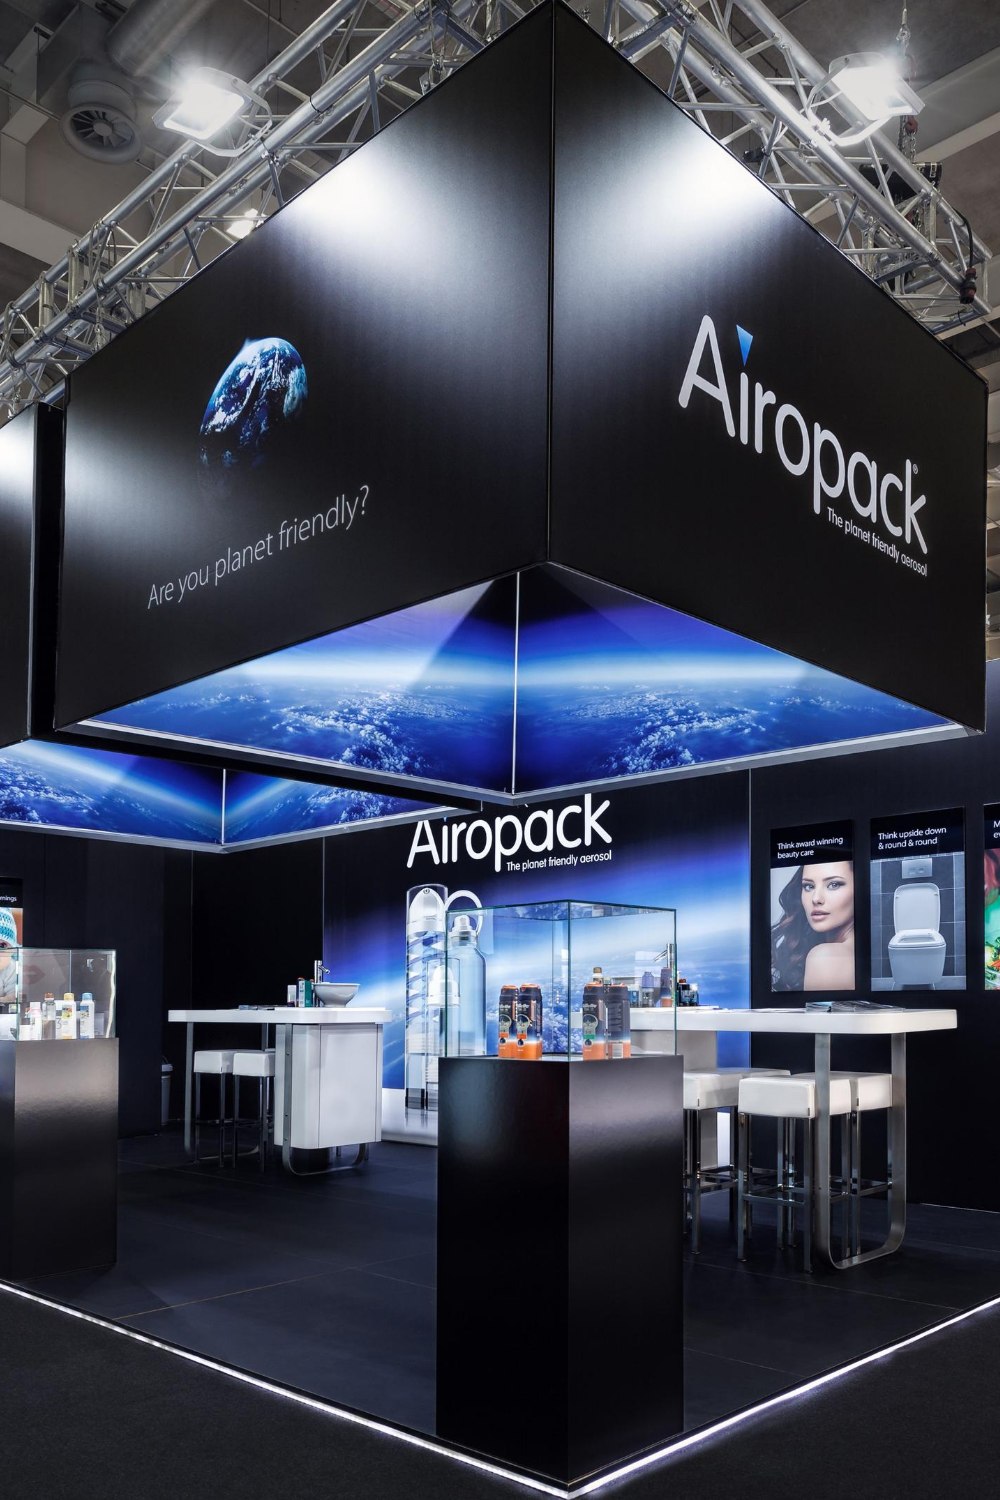 Exhibition Stand At Cosmoprof in Bologna #exhibitionstand #standbouw #beursstand #exhibitiondesign #standdesign #airopack #tradefair #tradeshow #booth #boothdesign #expo #showroom #experiencecenter #design #stand #beurs